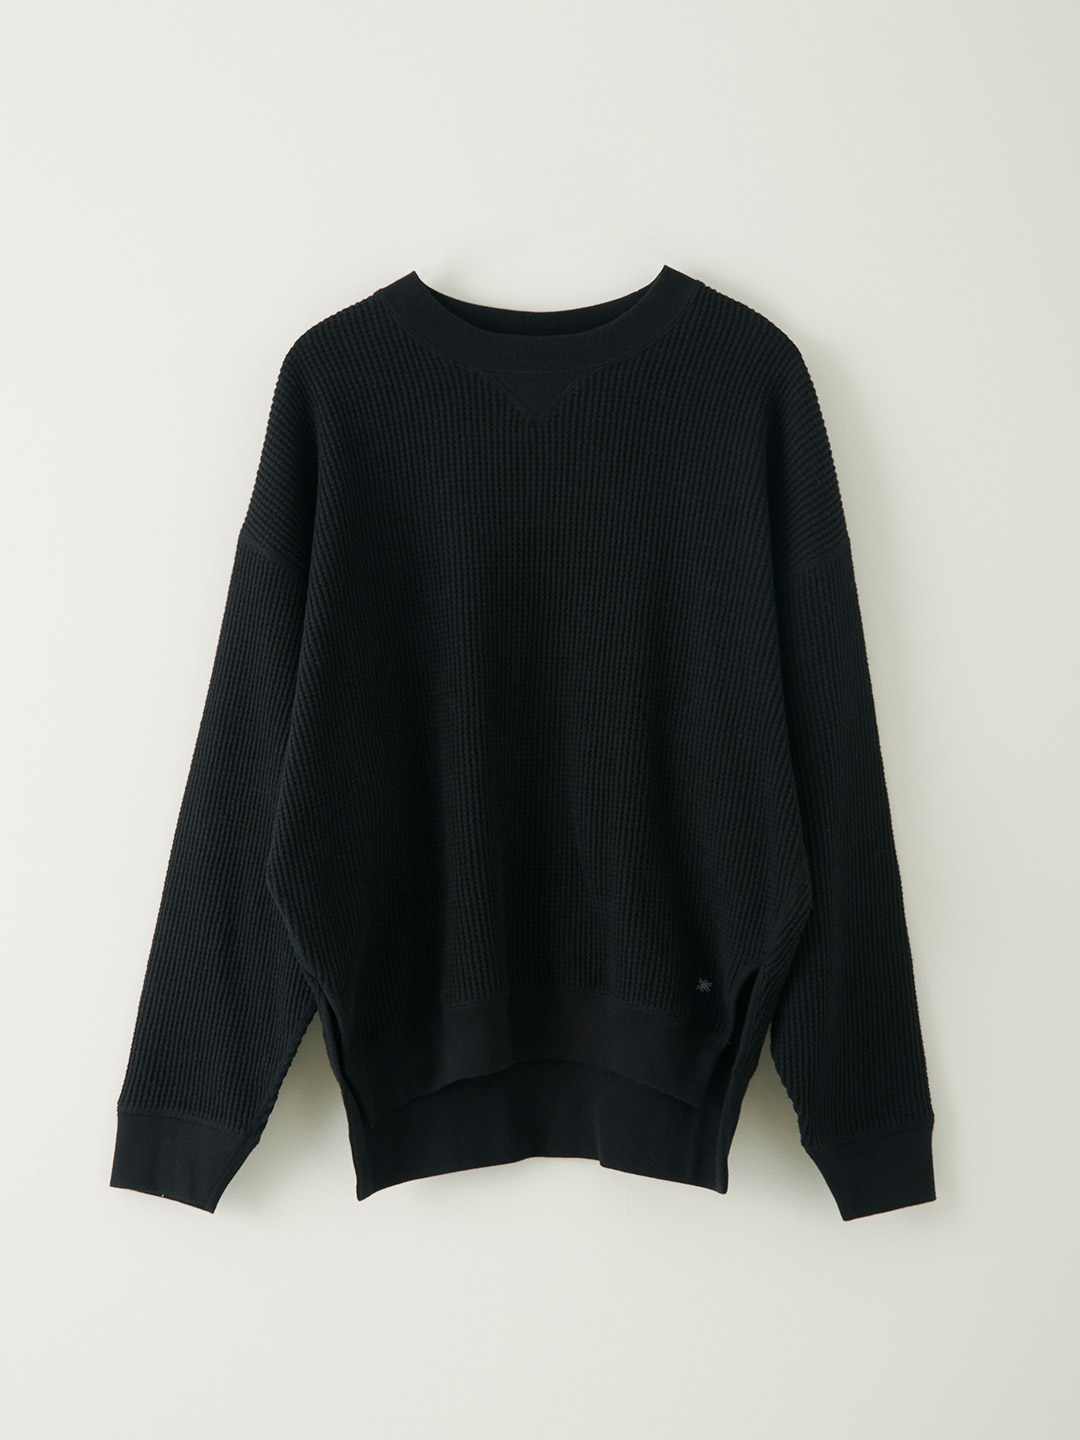 Thermal Cocoon L/S T - Black